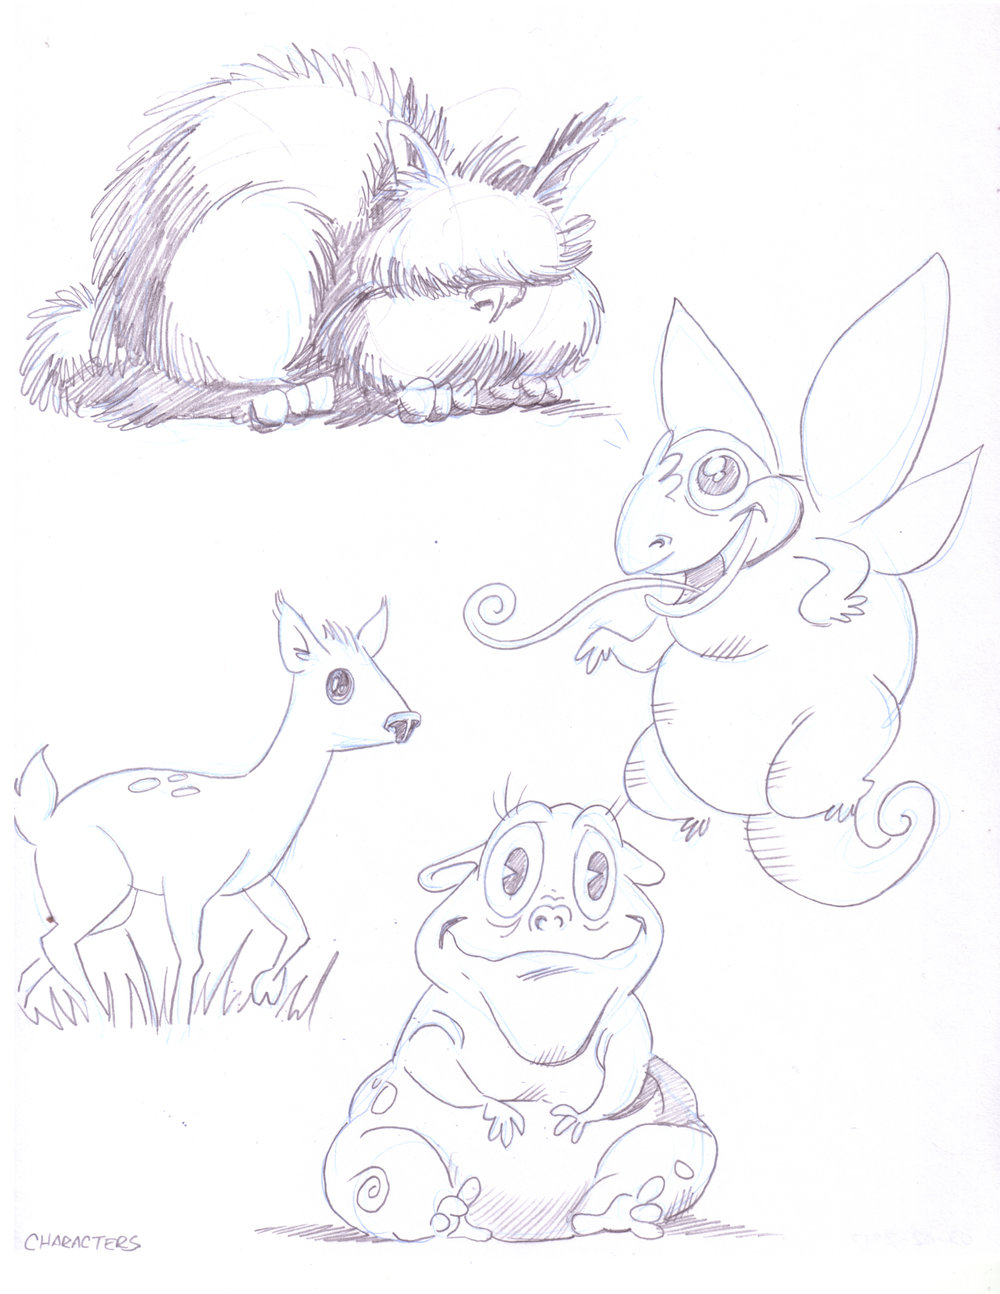 SAM THE SQUONK SAVES <br> THE PARK CHARACTER SKETCHES